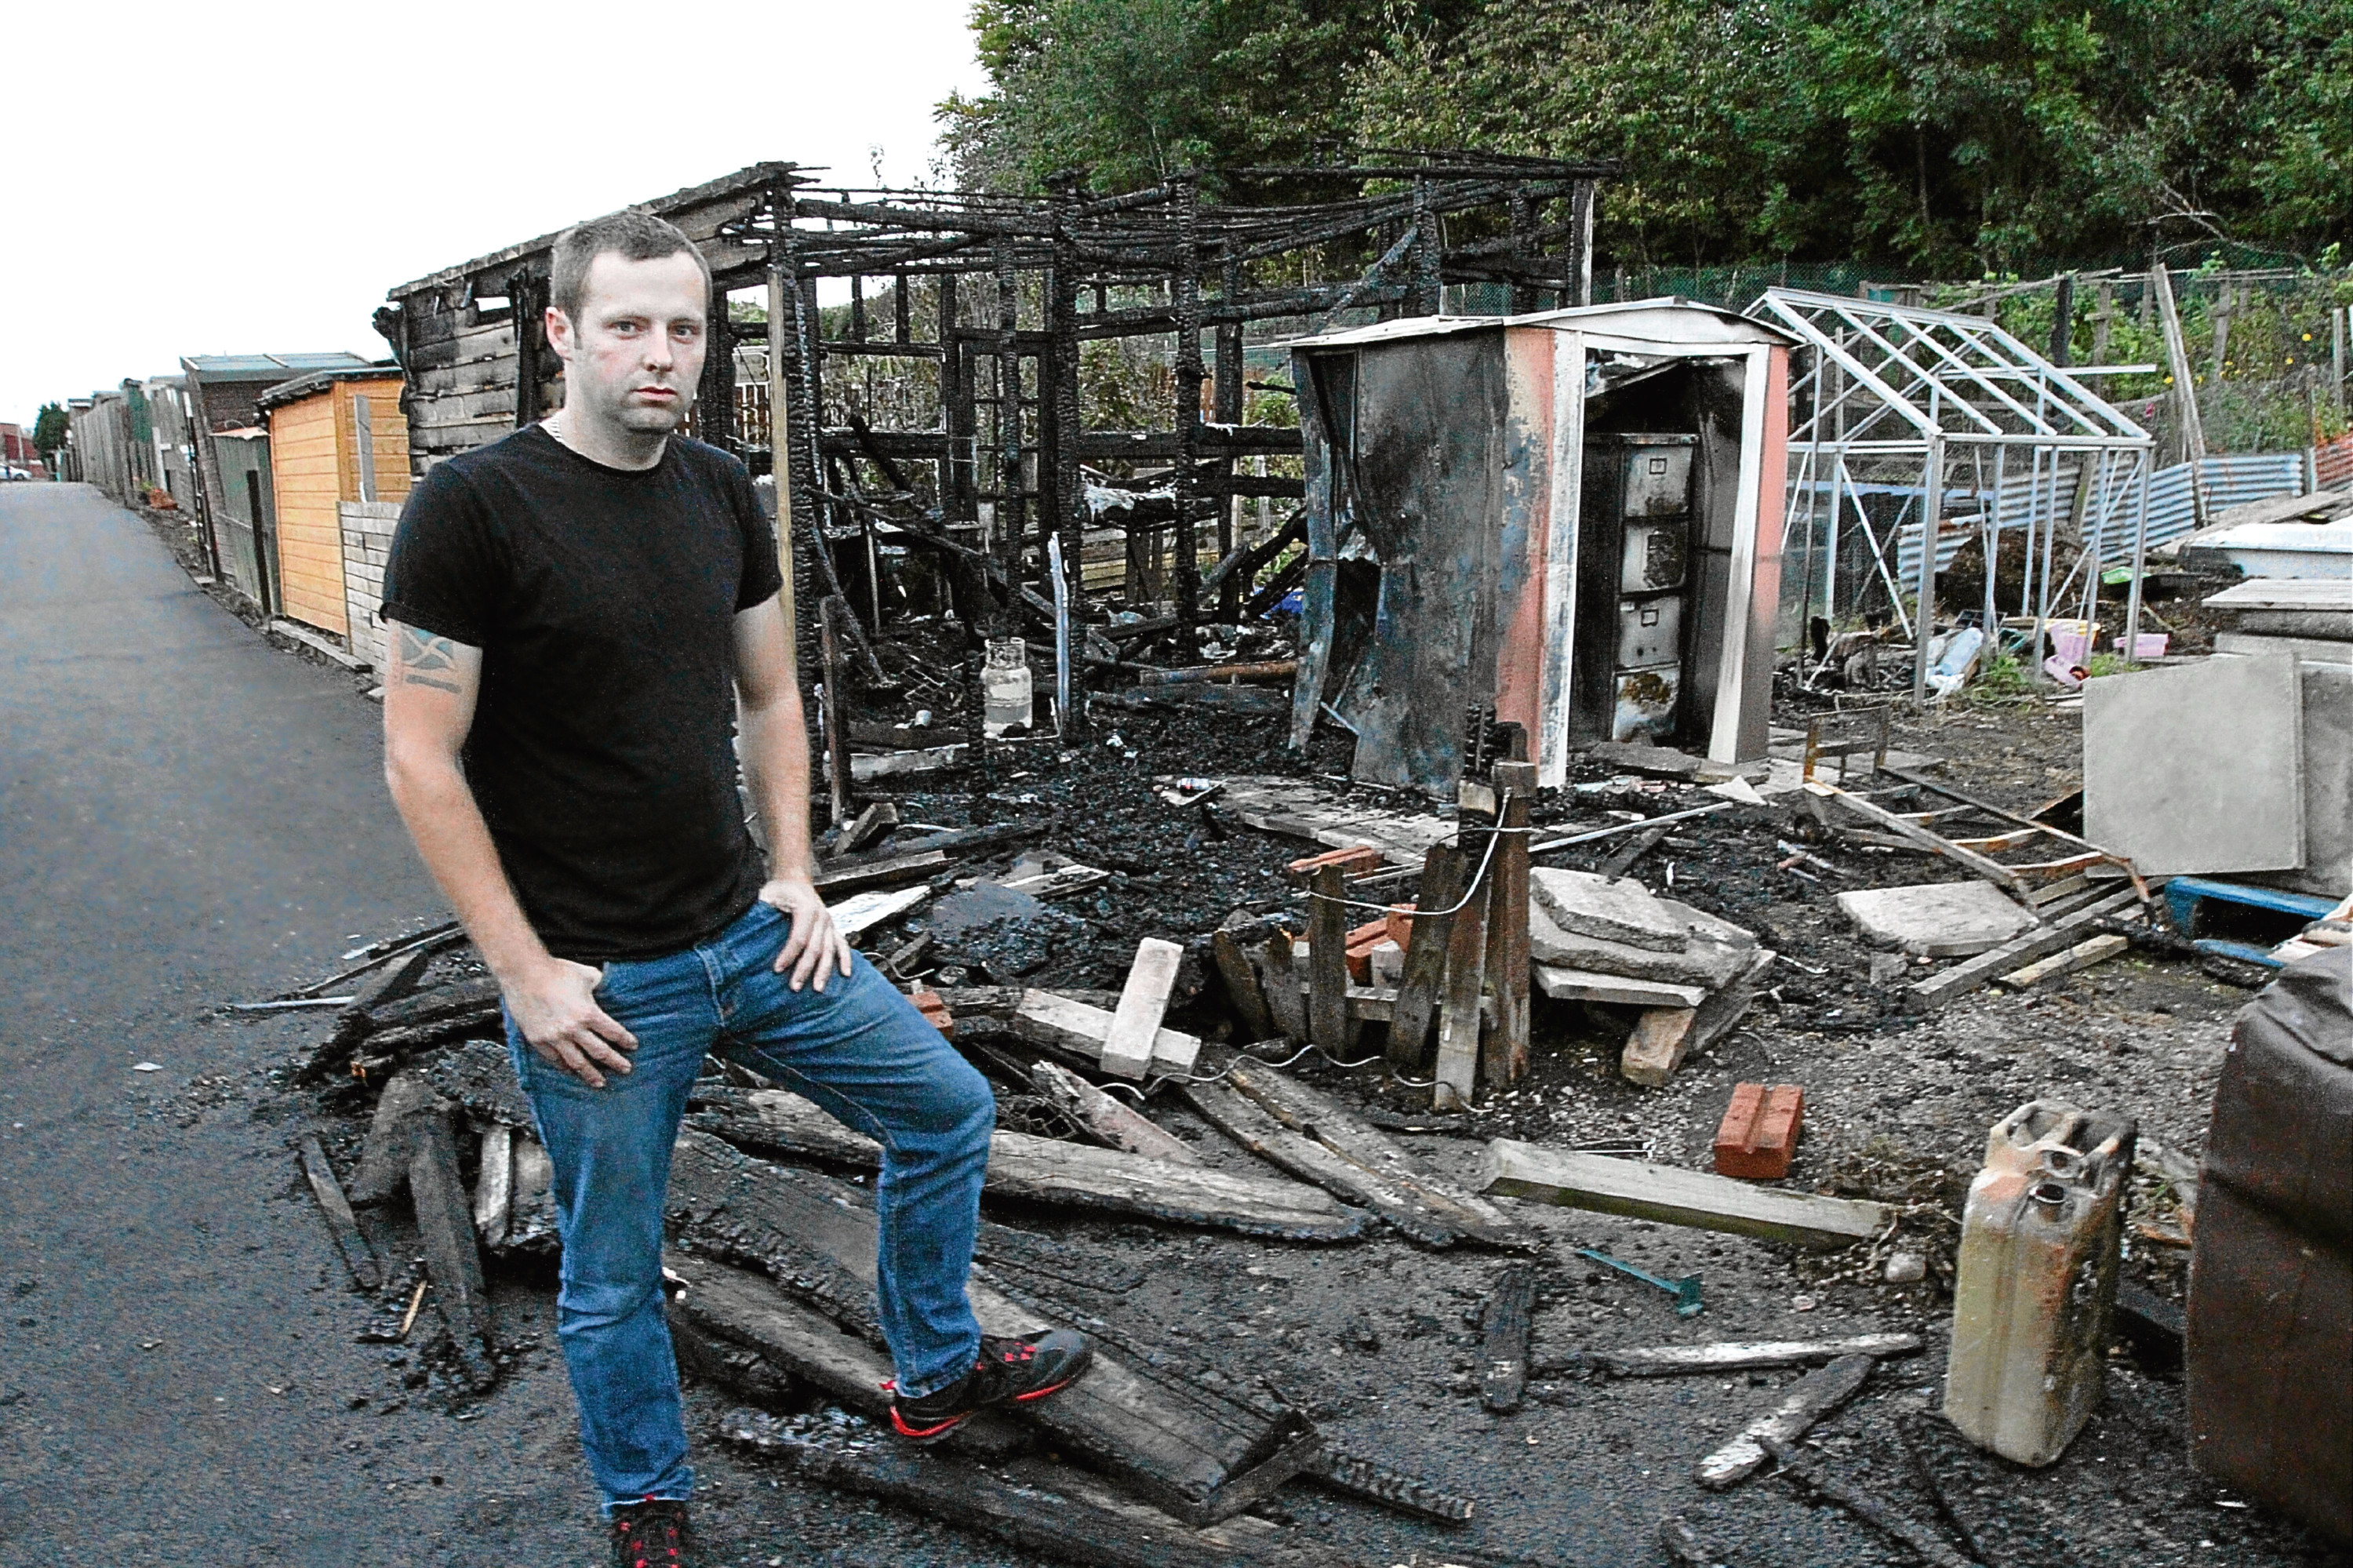 Peter Chalmers at the scene of the allotment blaze.